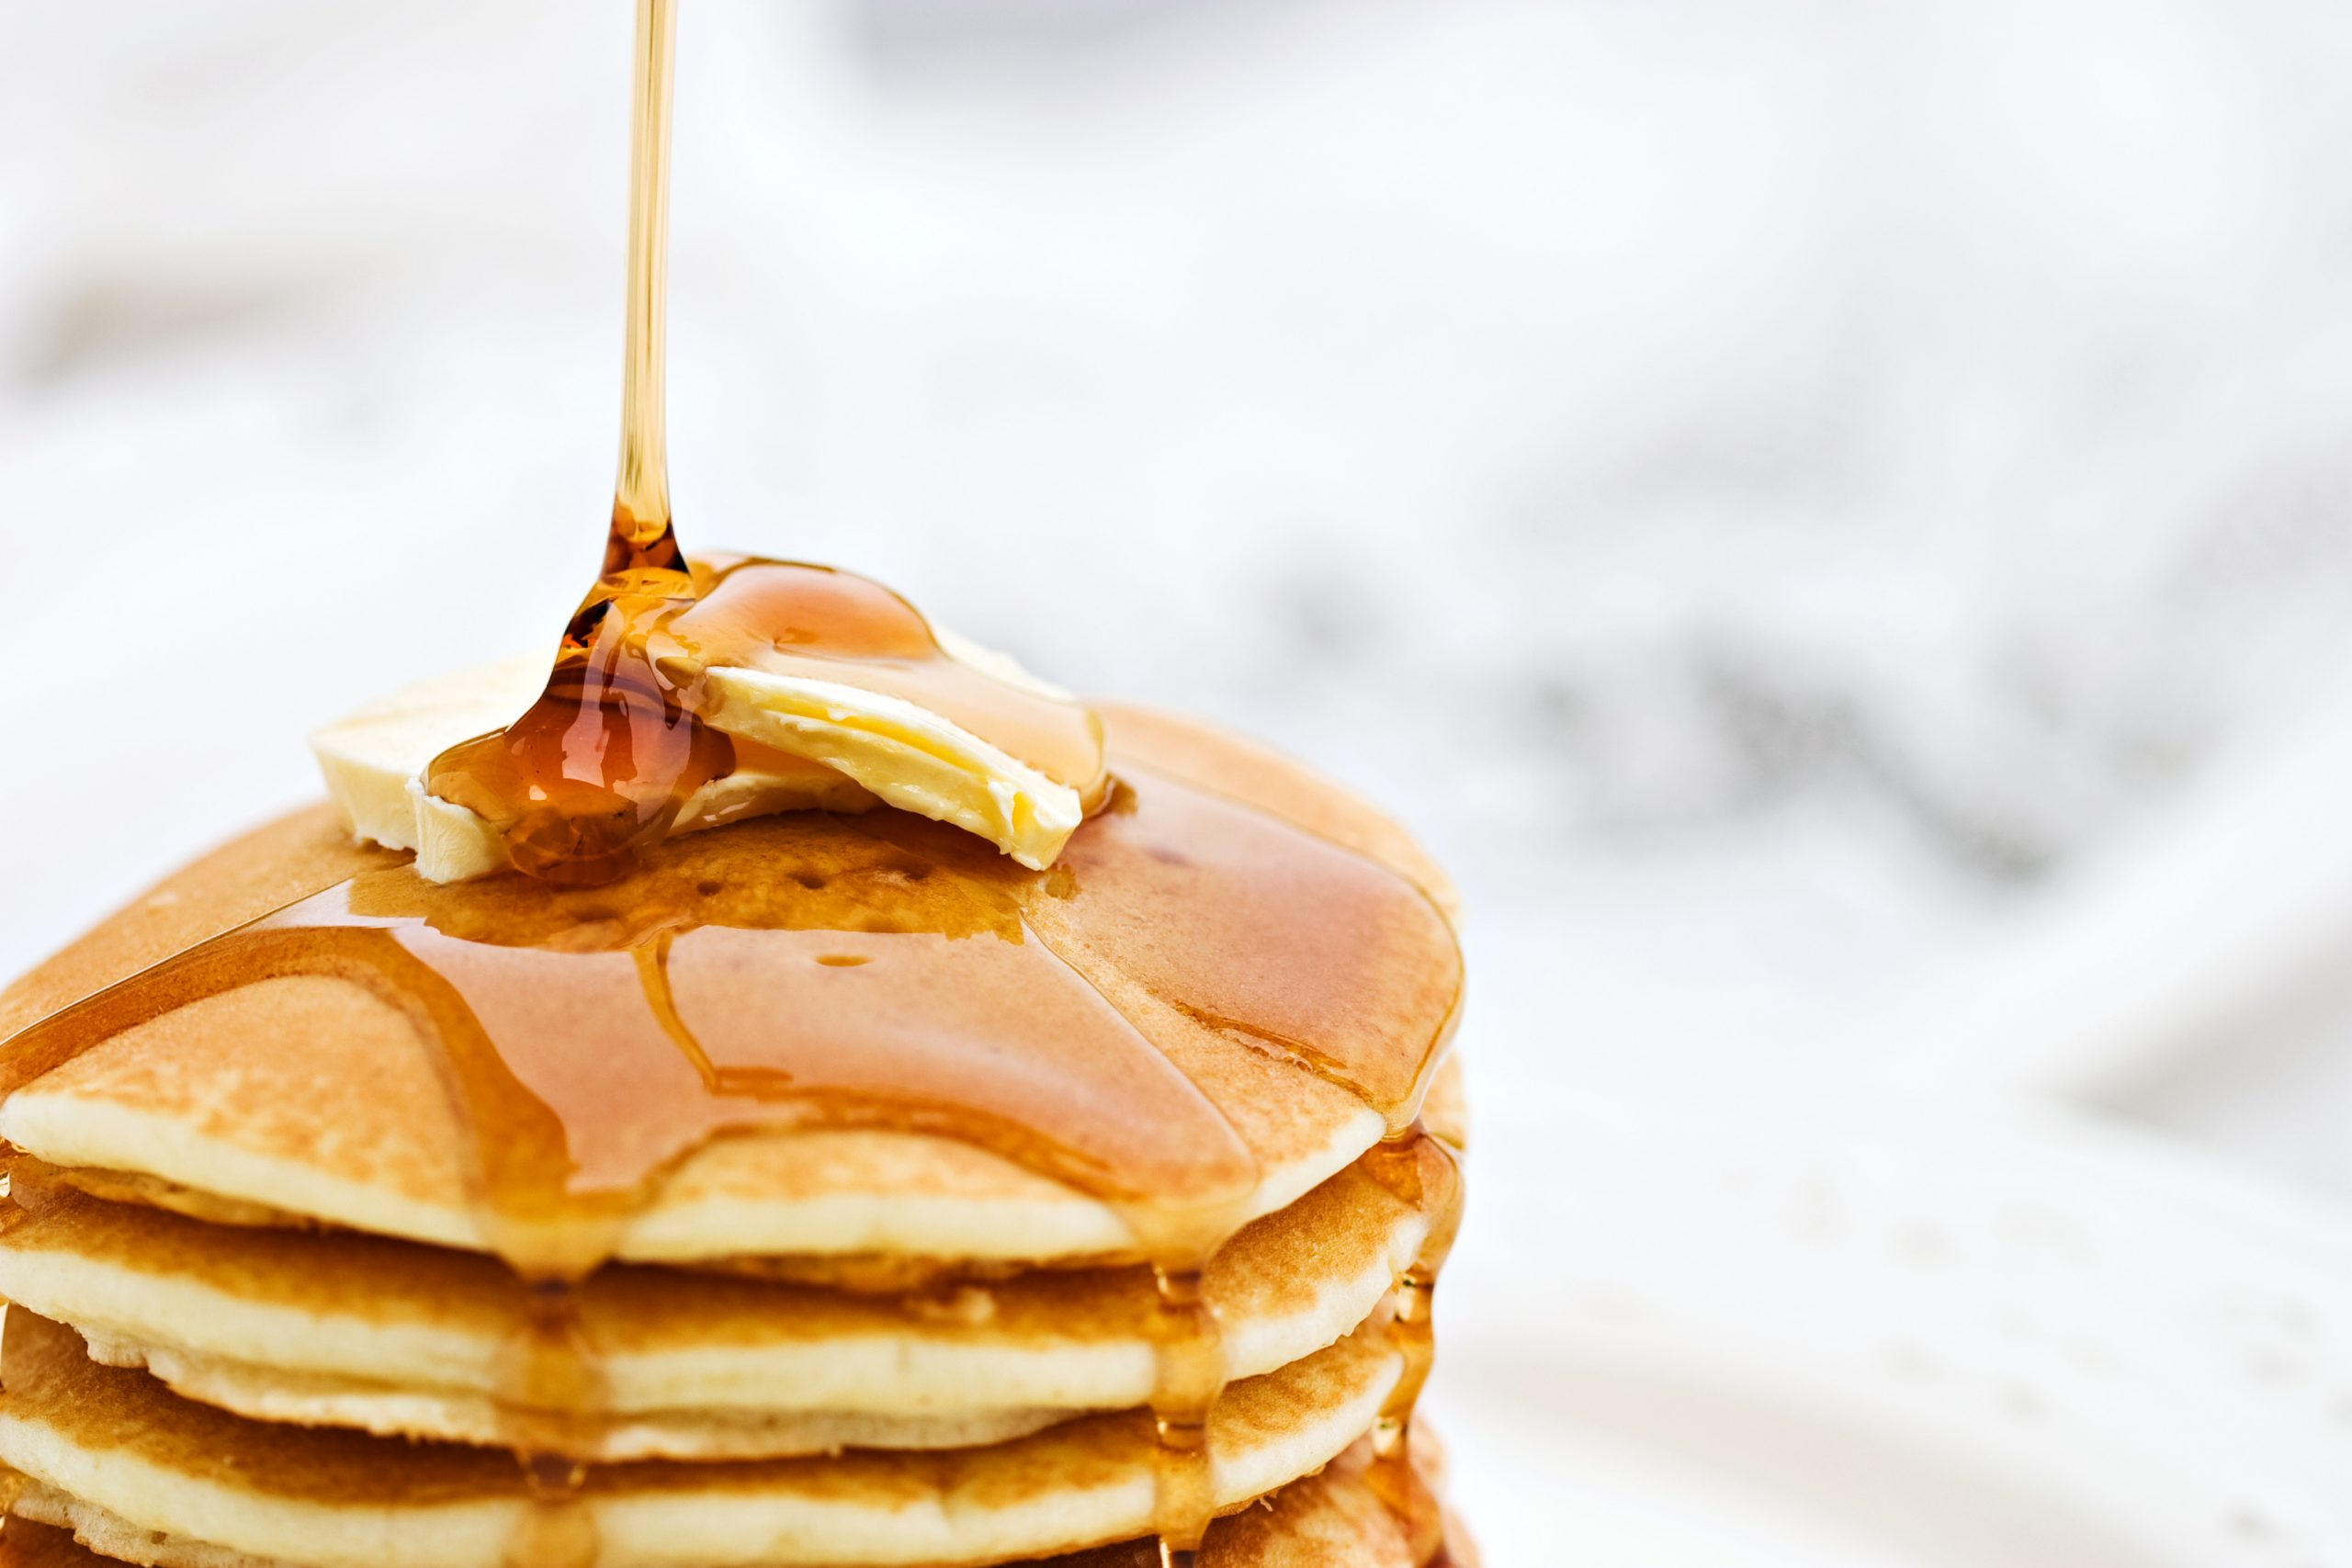 A stack of panckaes with butter and syrup.